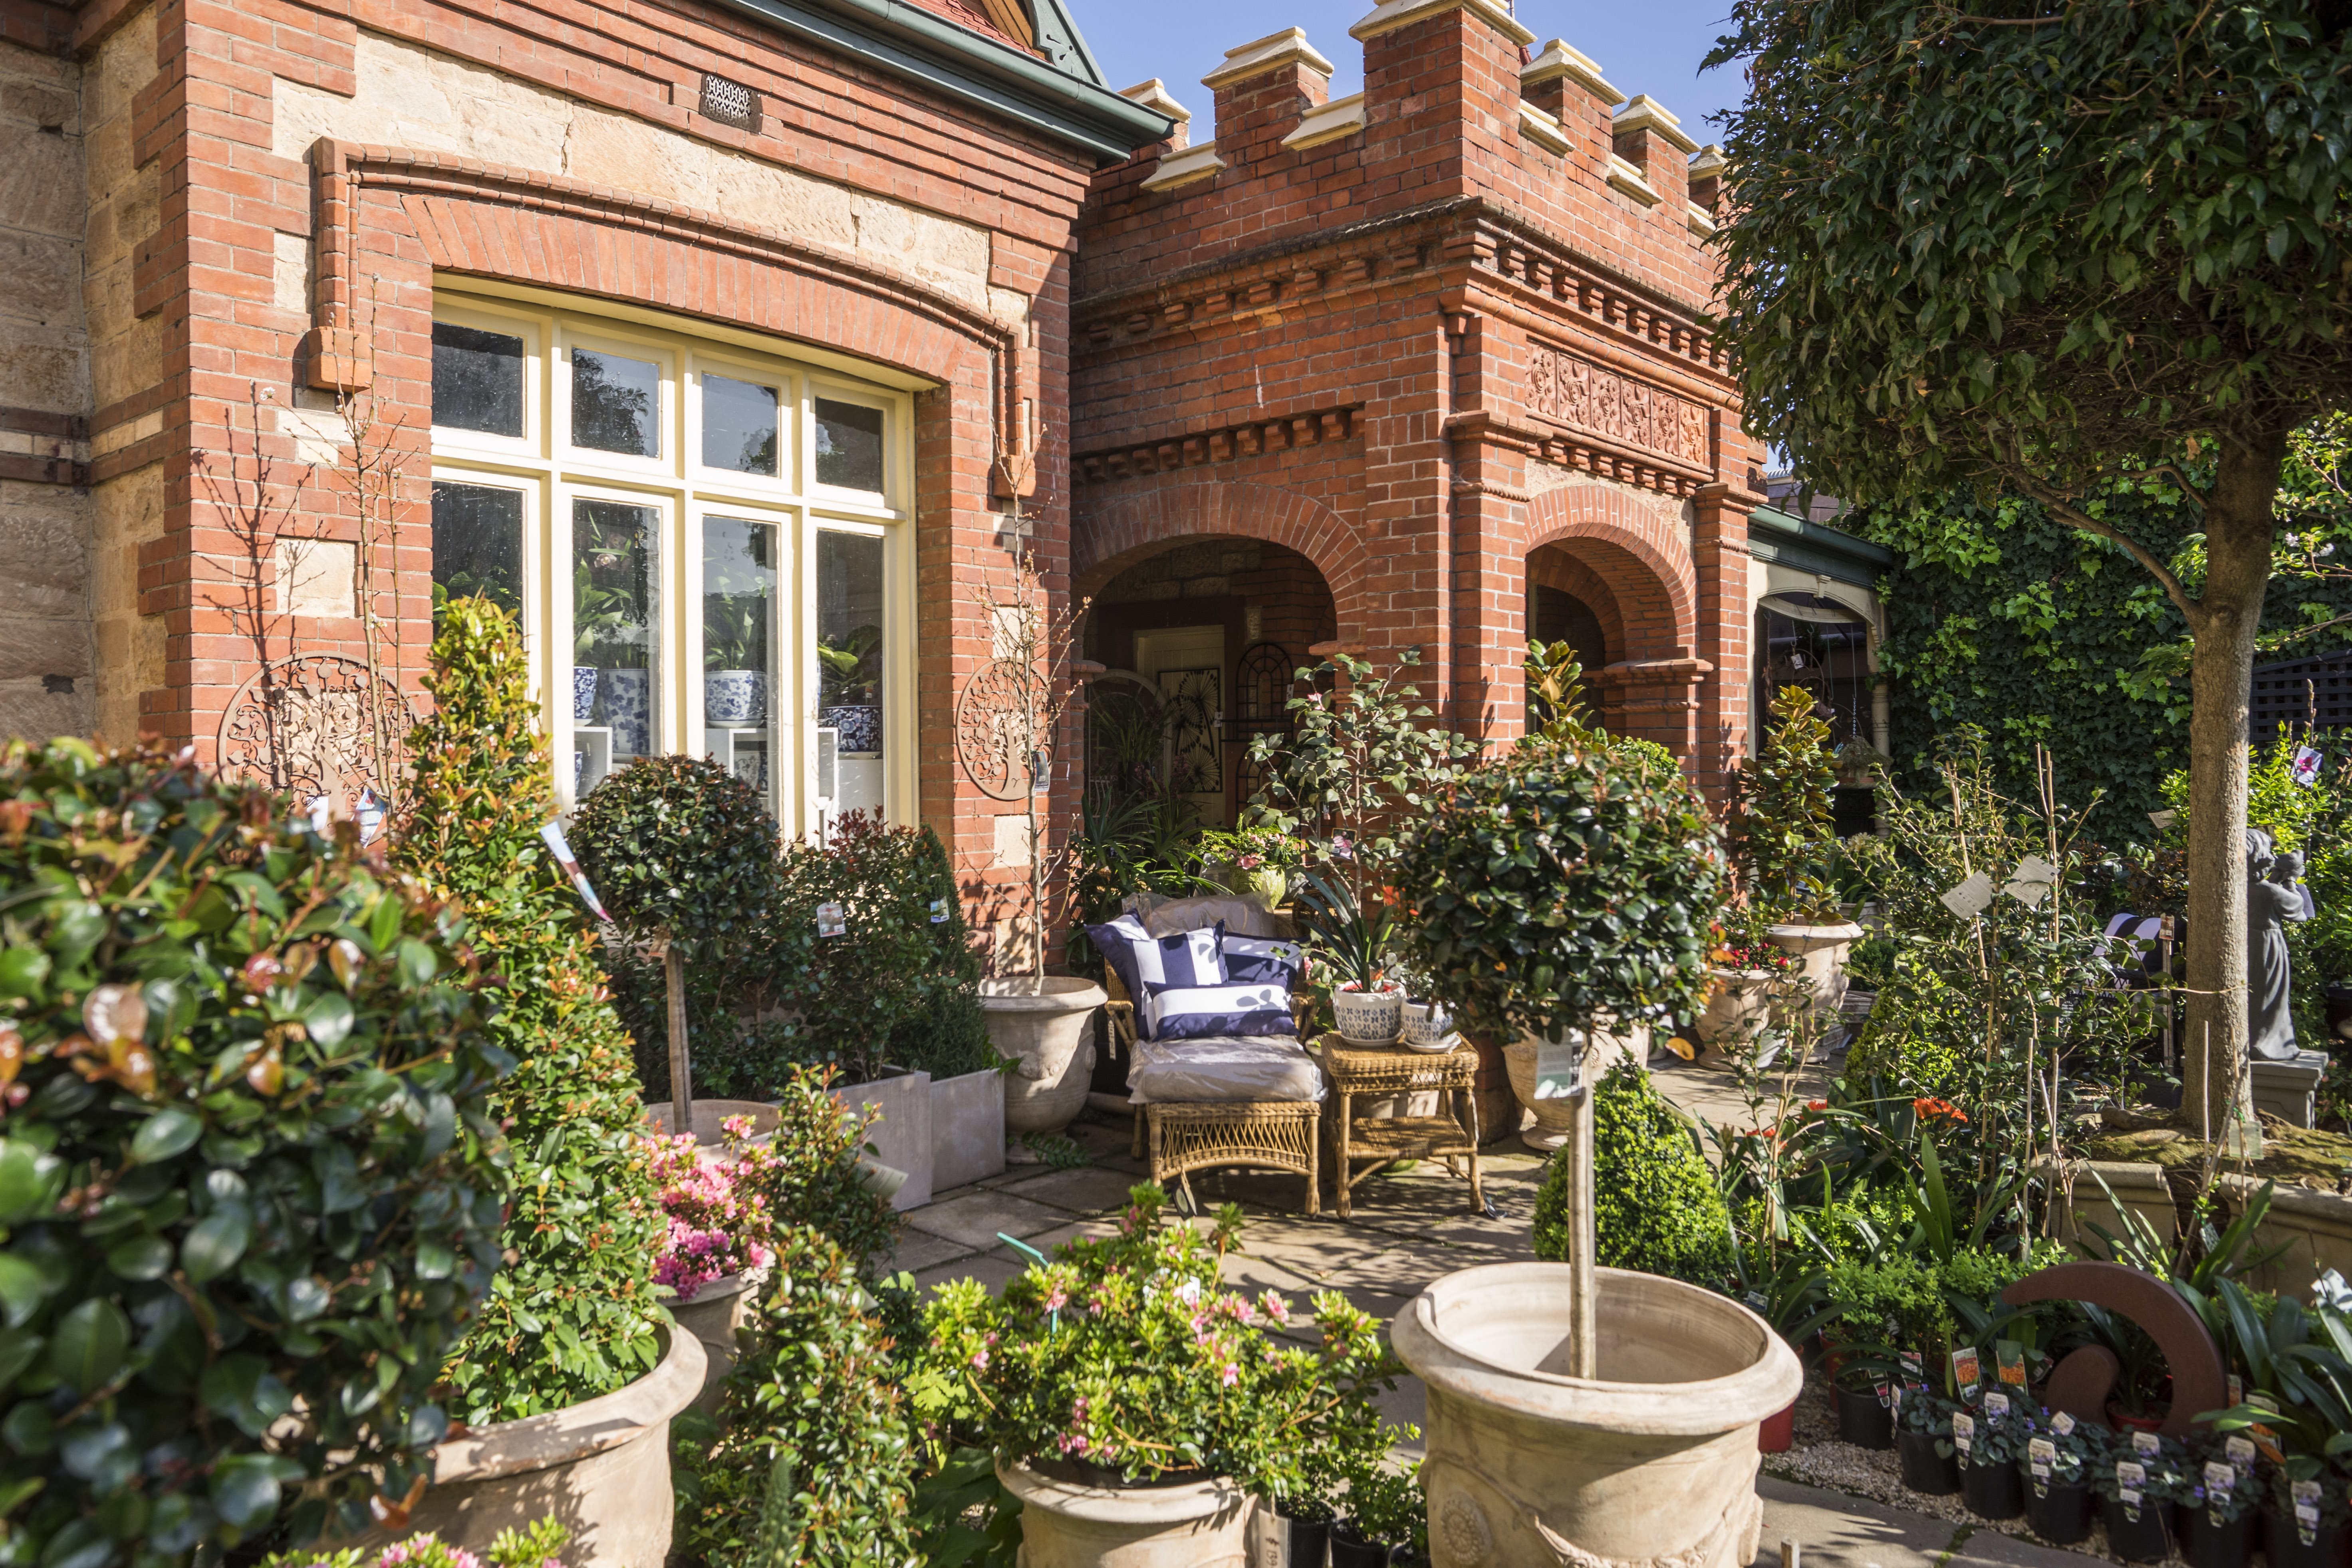 Conservatory Garden And Home | About Us